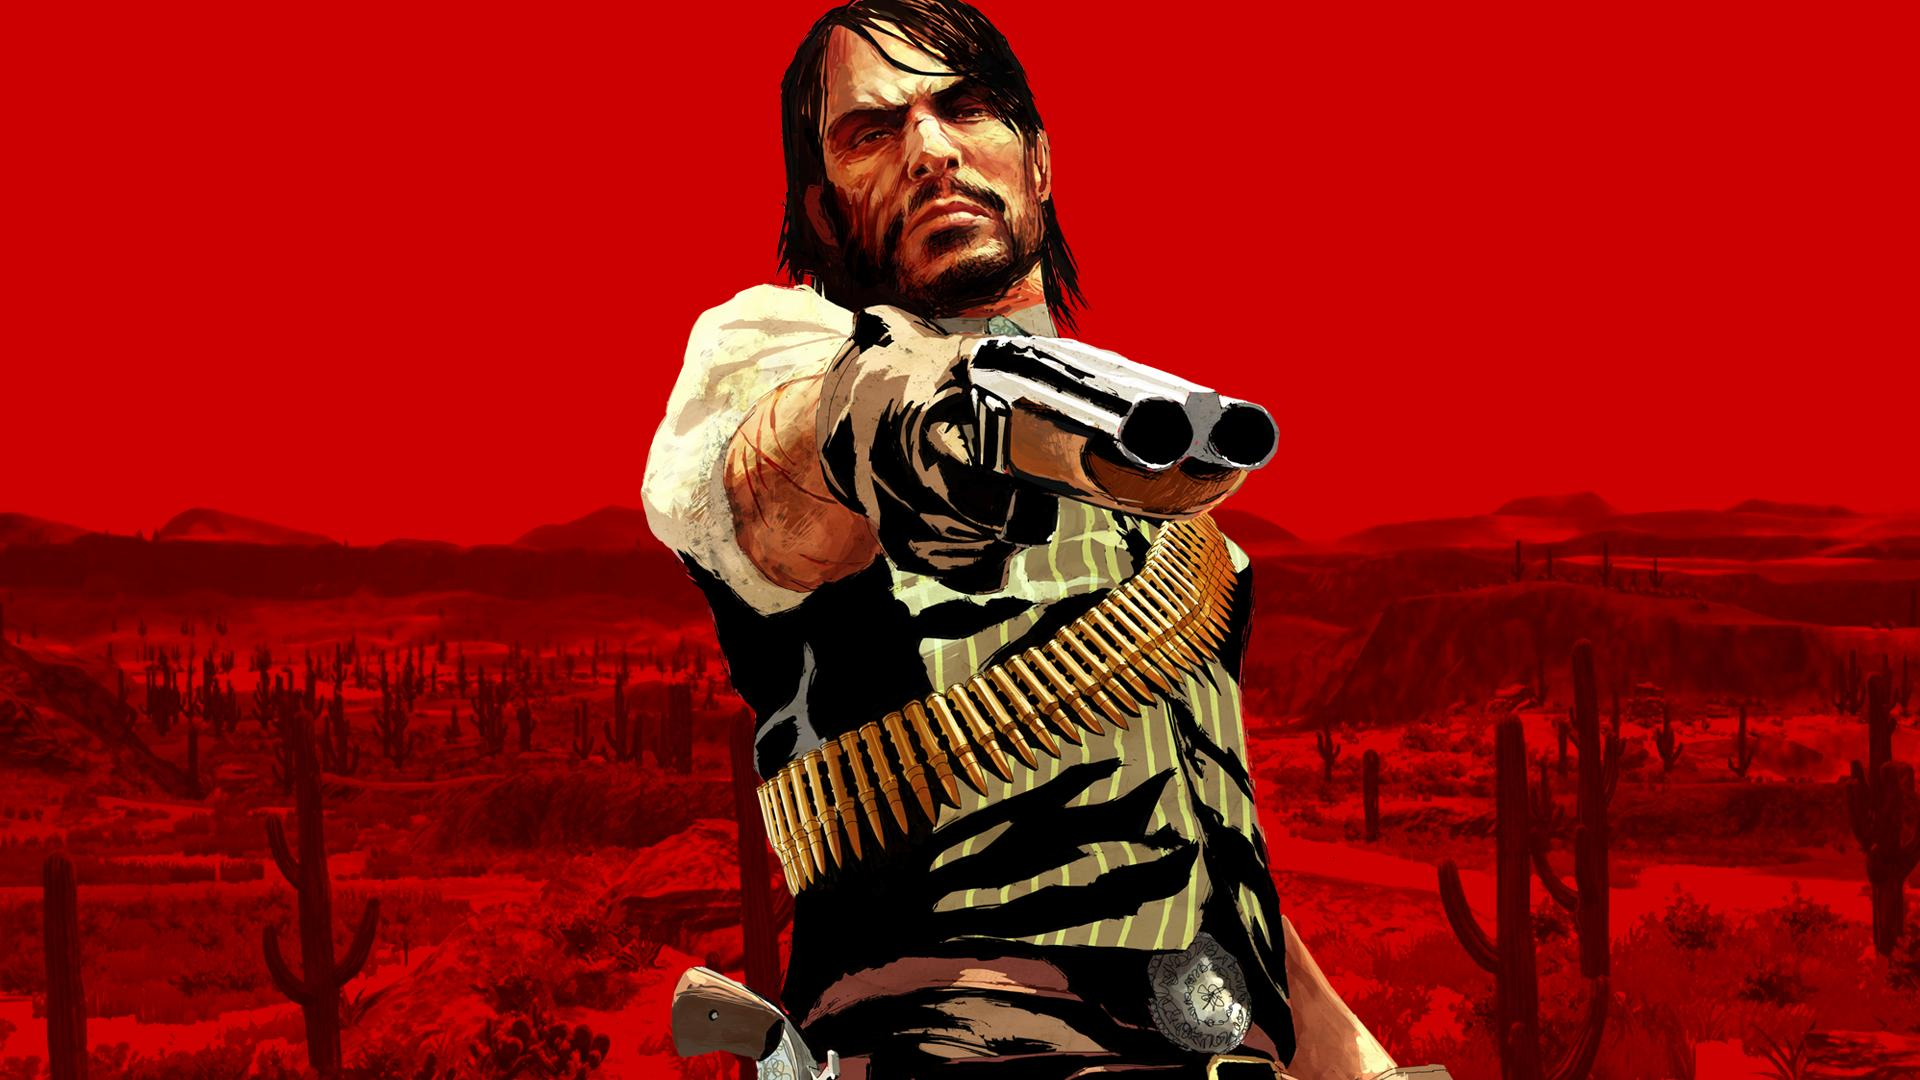 Red Dead Redemption HD Wallpaper